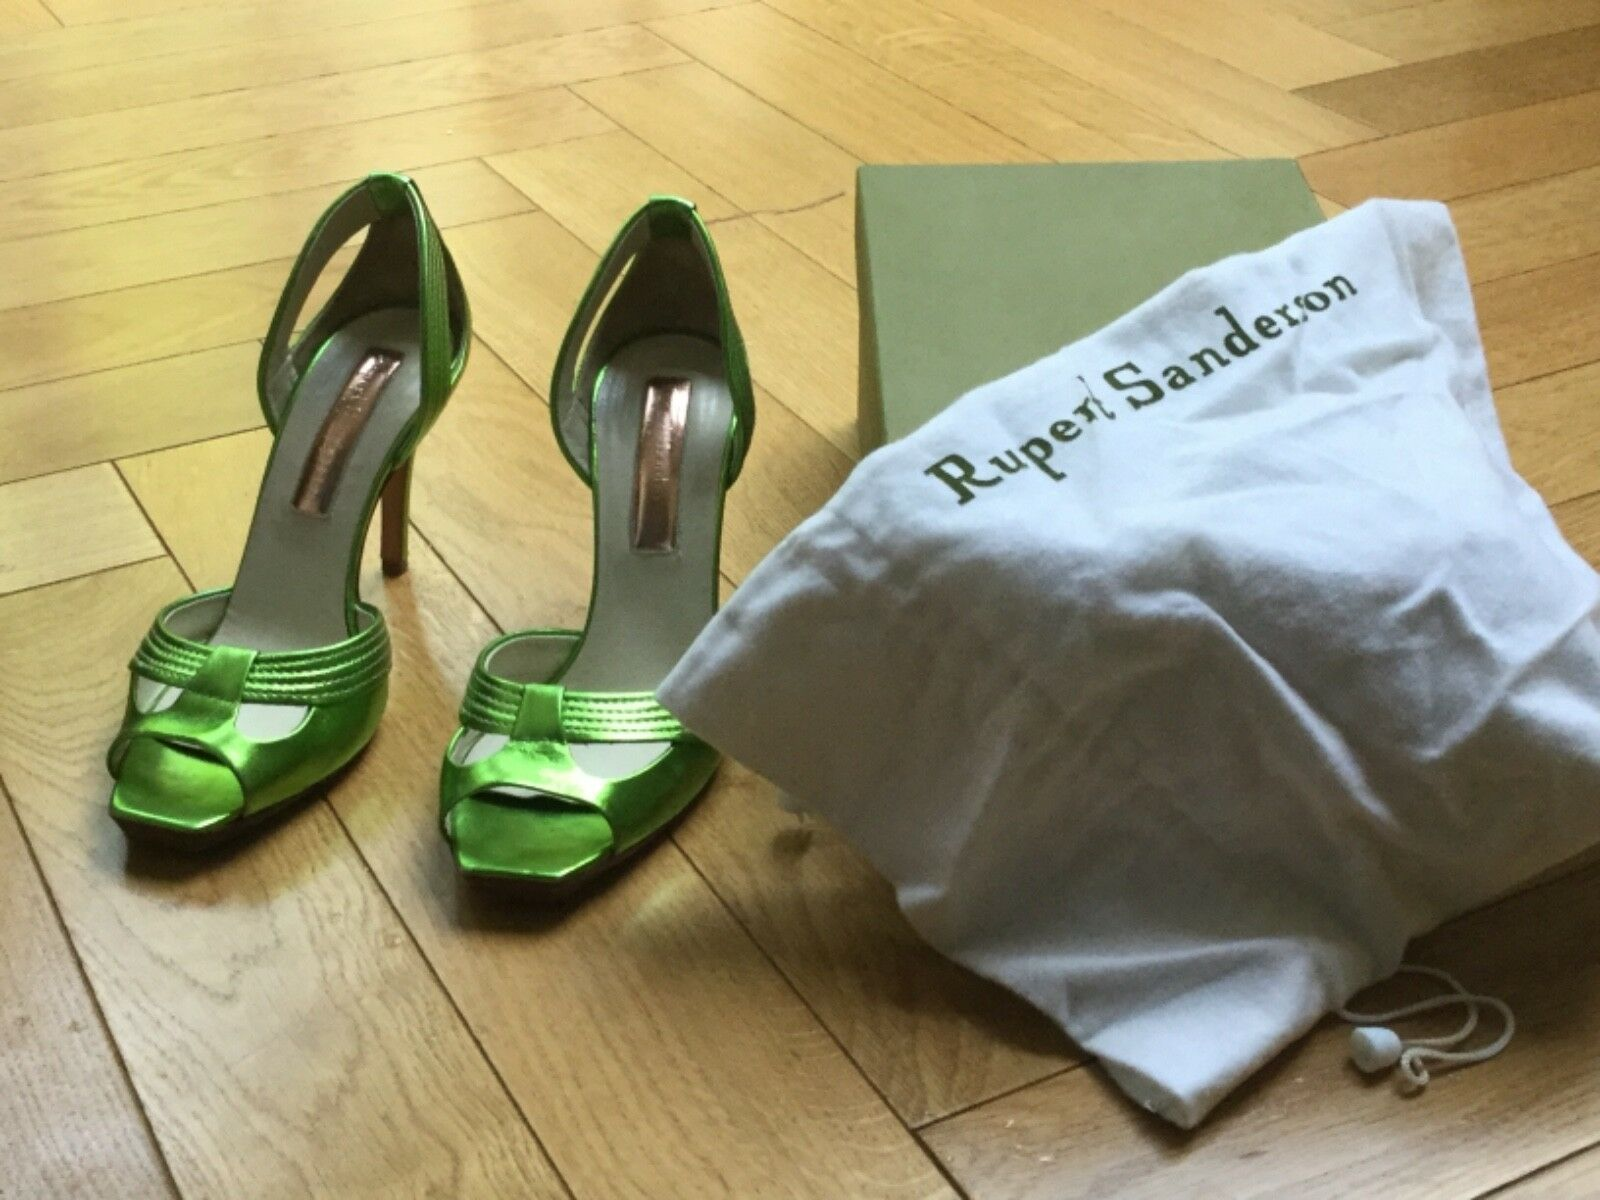 Rupert sanderson metallic green stiletto schuhe schuhe stiletto 9cded0